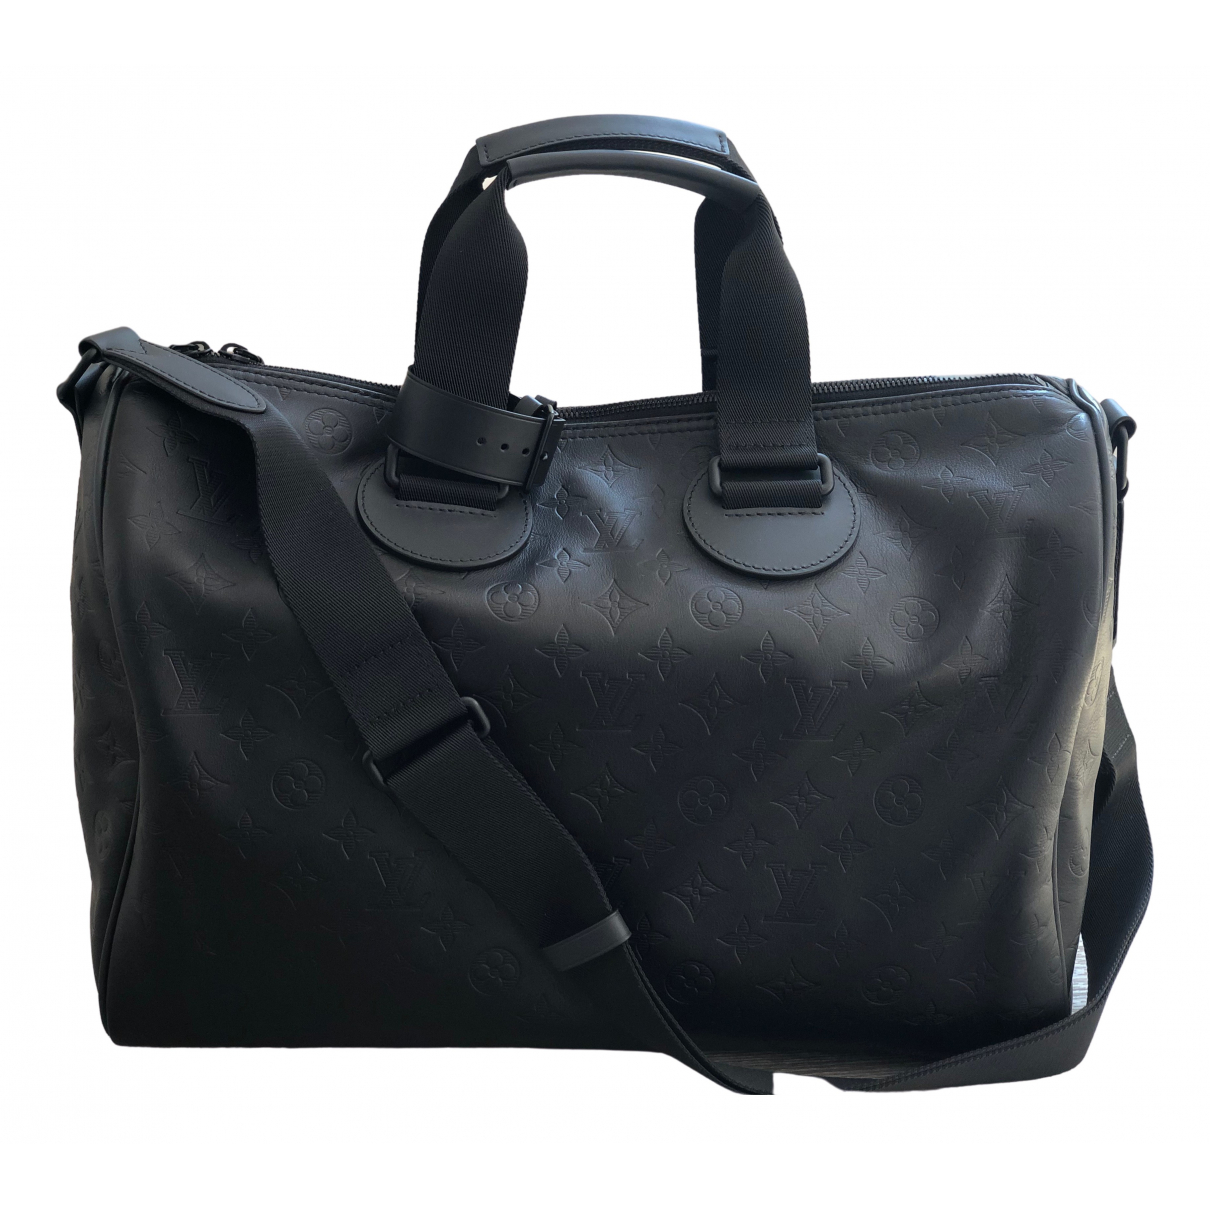 Louis Vuitton Keepall Black Leather bag for Men \N